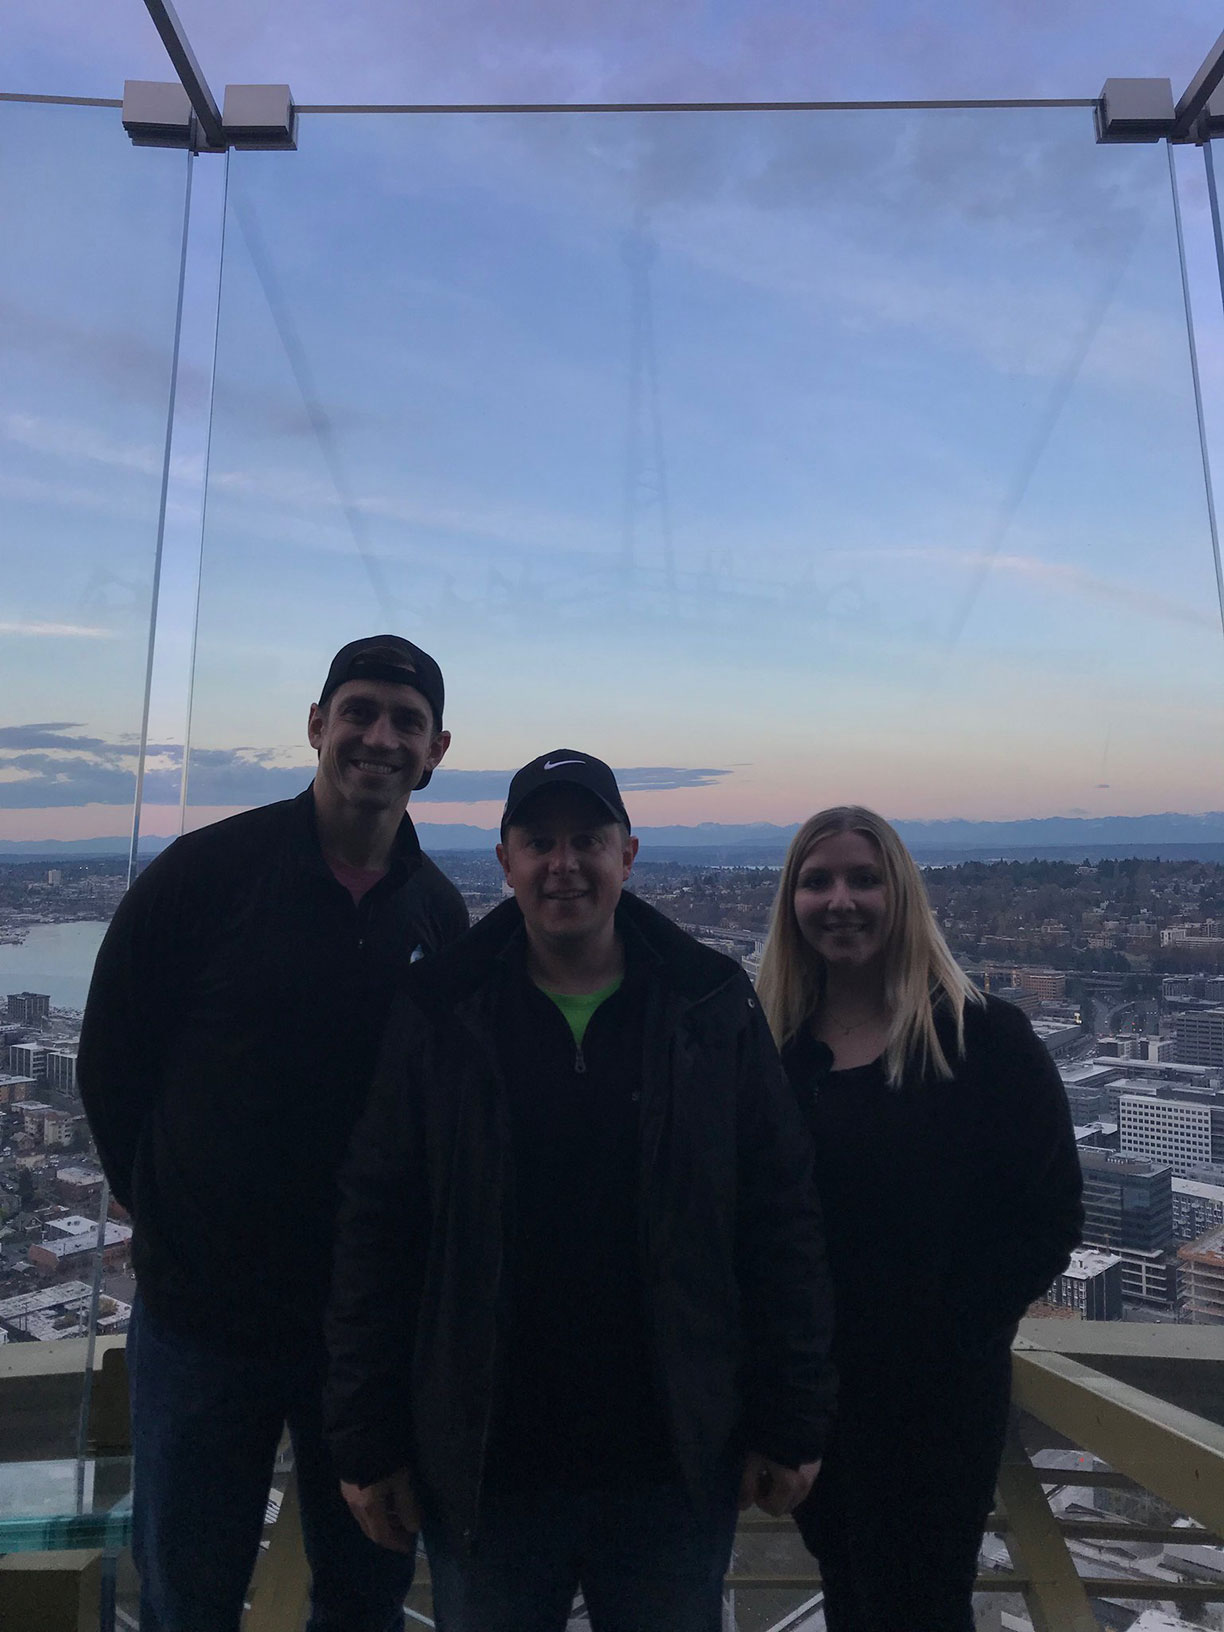 The SmartSolve team enjoyed a little downtime in Seattle yesterday, but are right back at it for SPC Impact 2019 today! If you're at the event, stop by booth 6 and say hello!